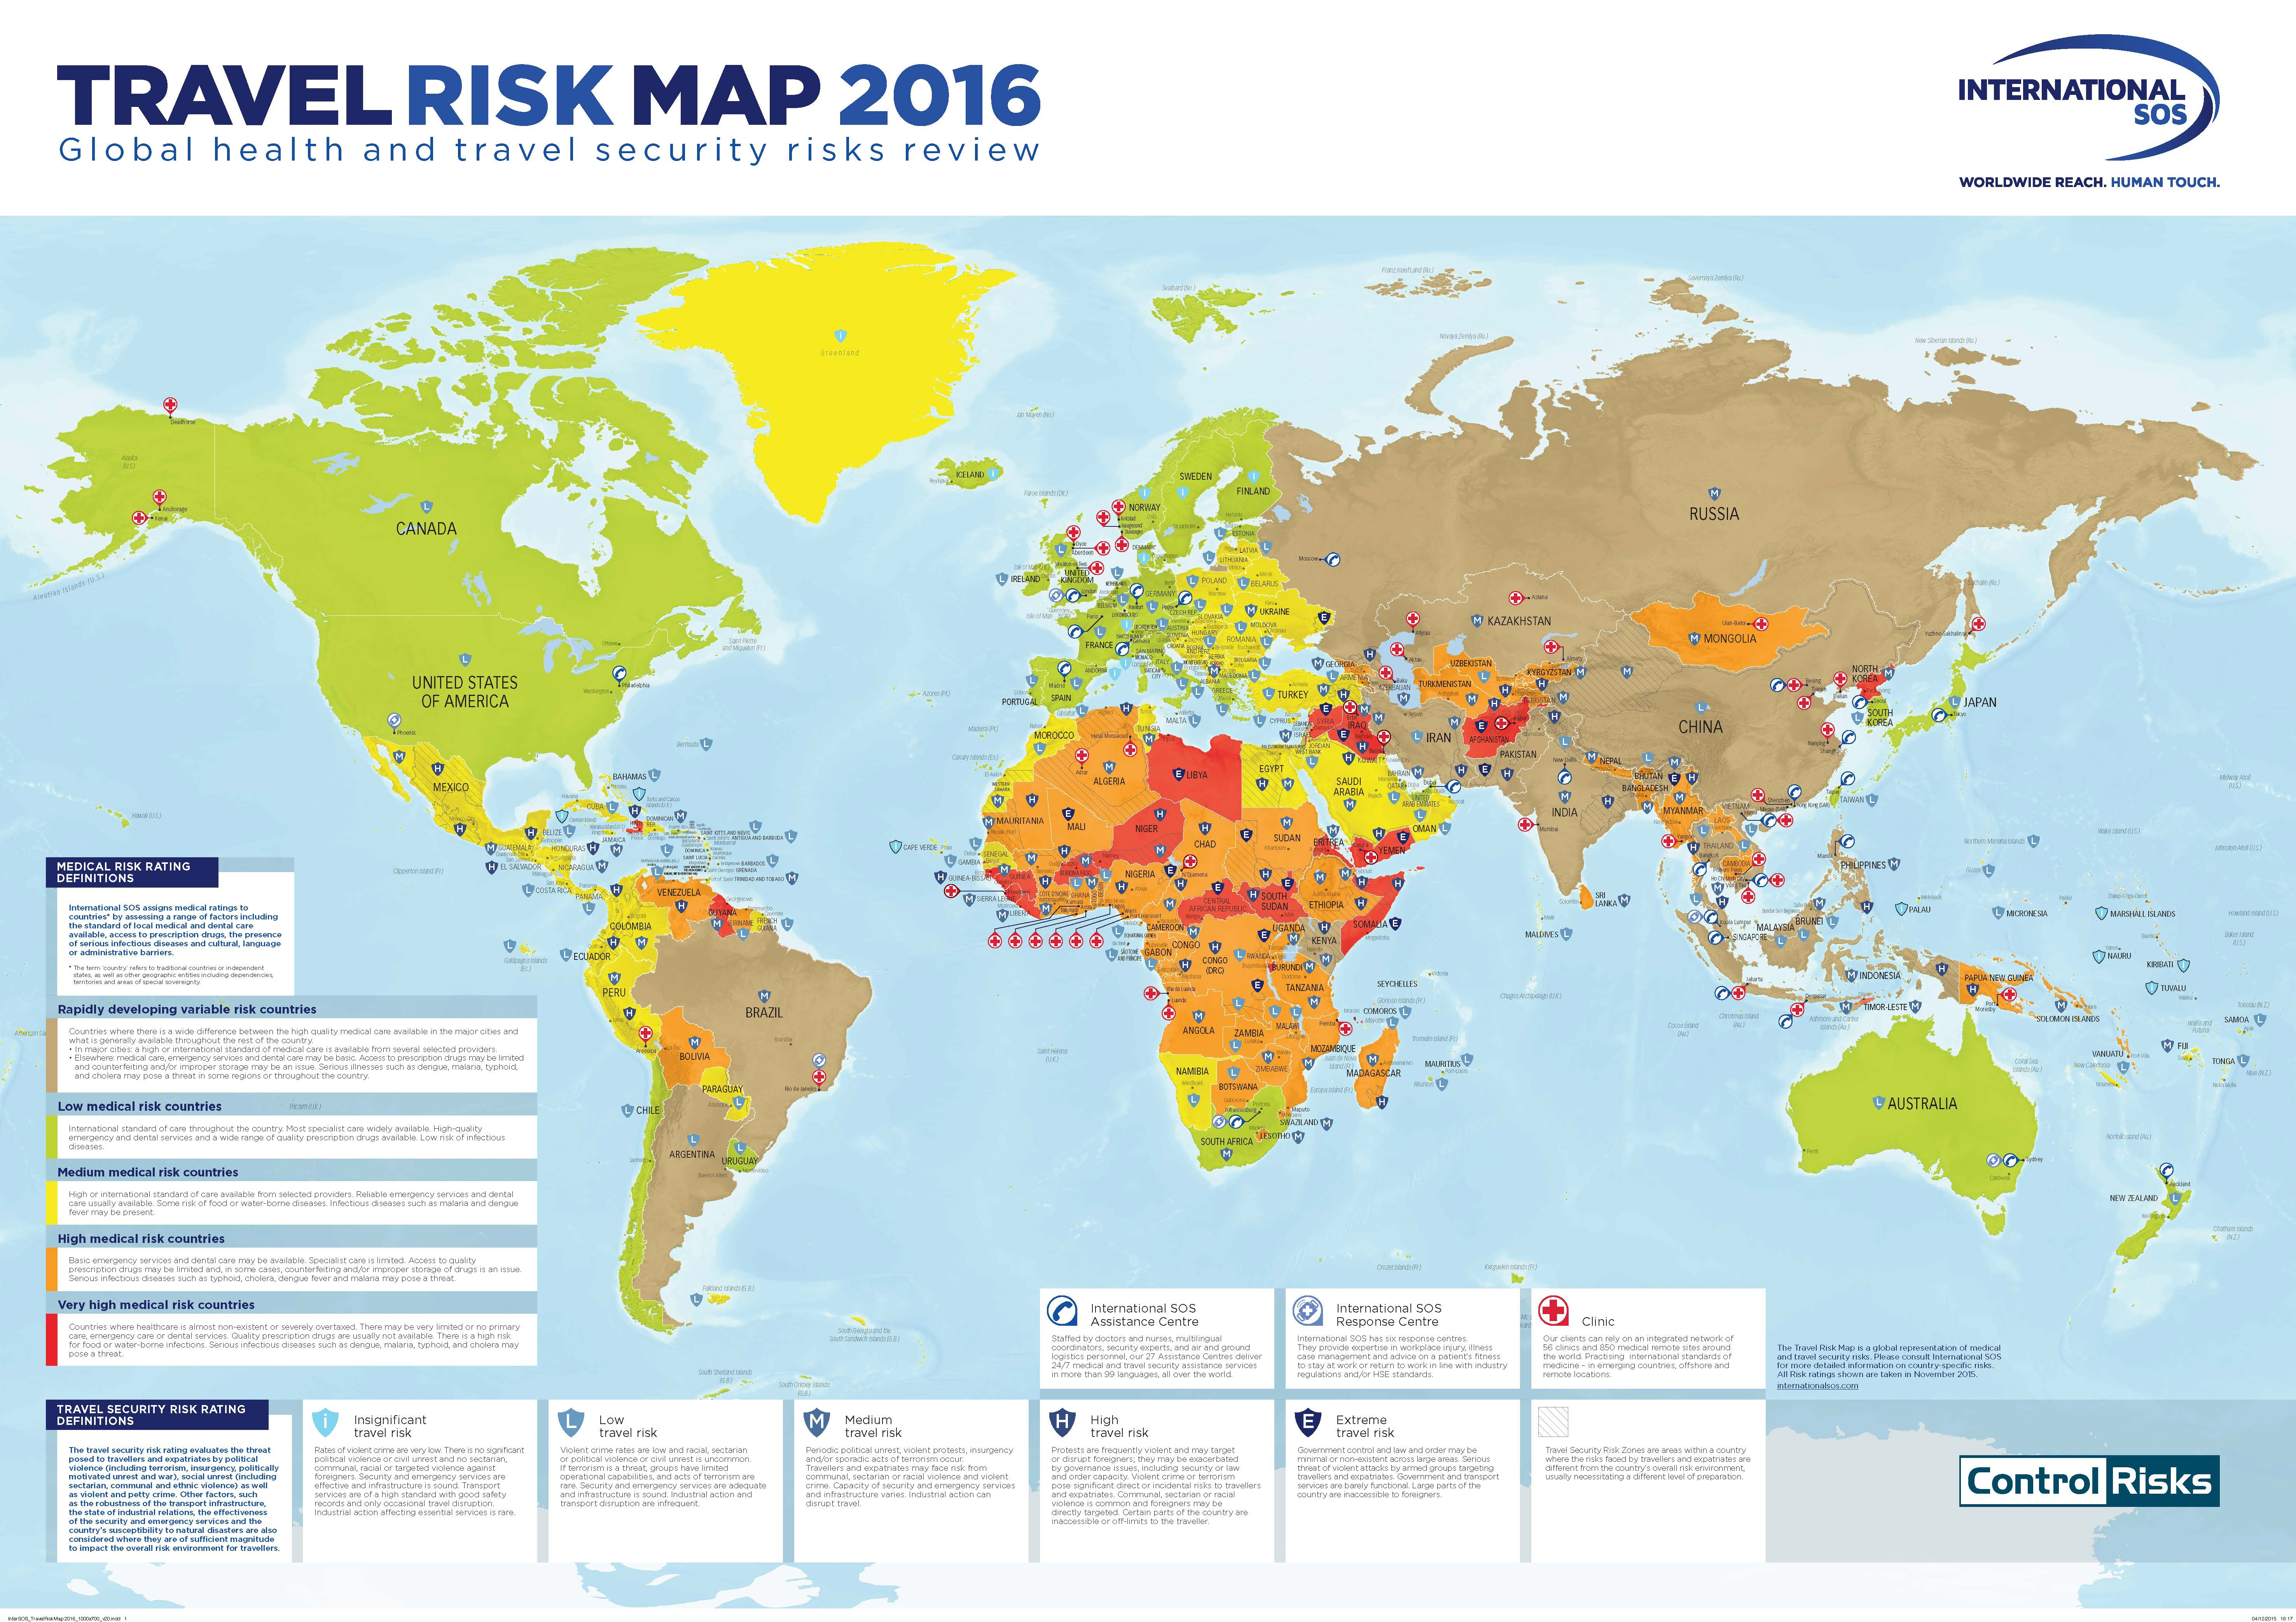 FirstofItsKind Travel Risk Map Launched By International SOS And - Where have you been travel map